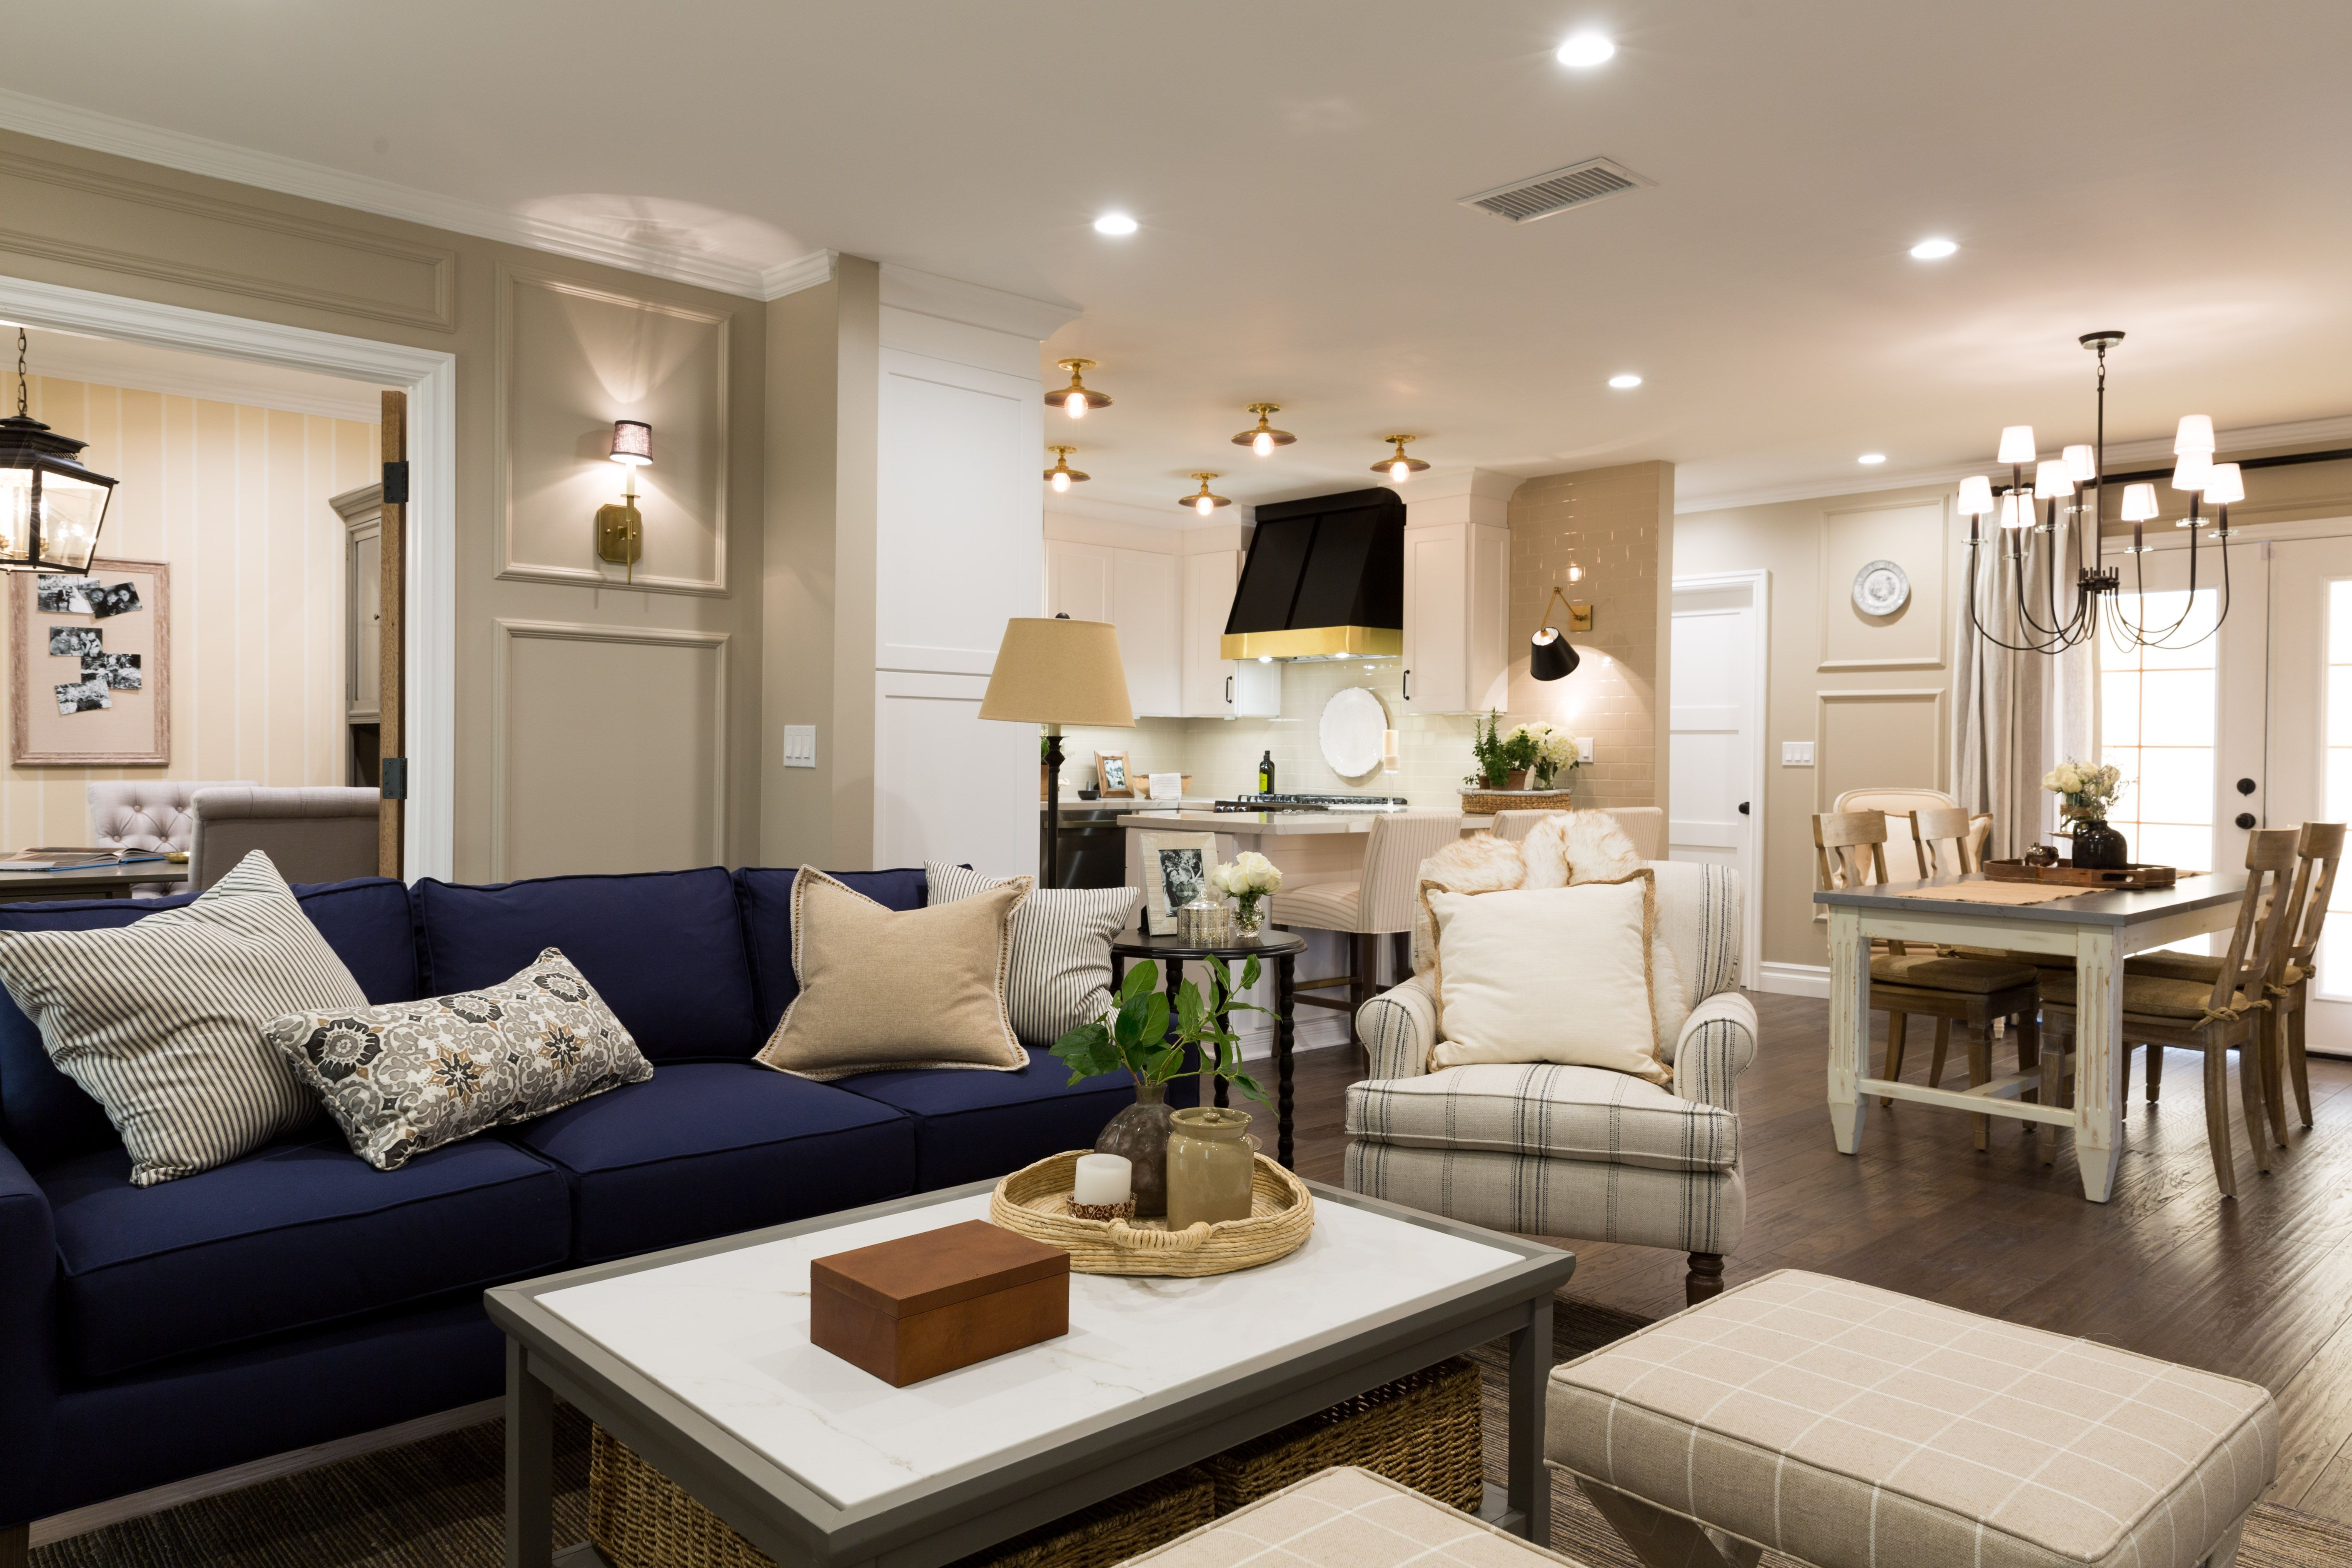 Classic Home Decor Themes That Are Always In Style Classic Home